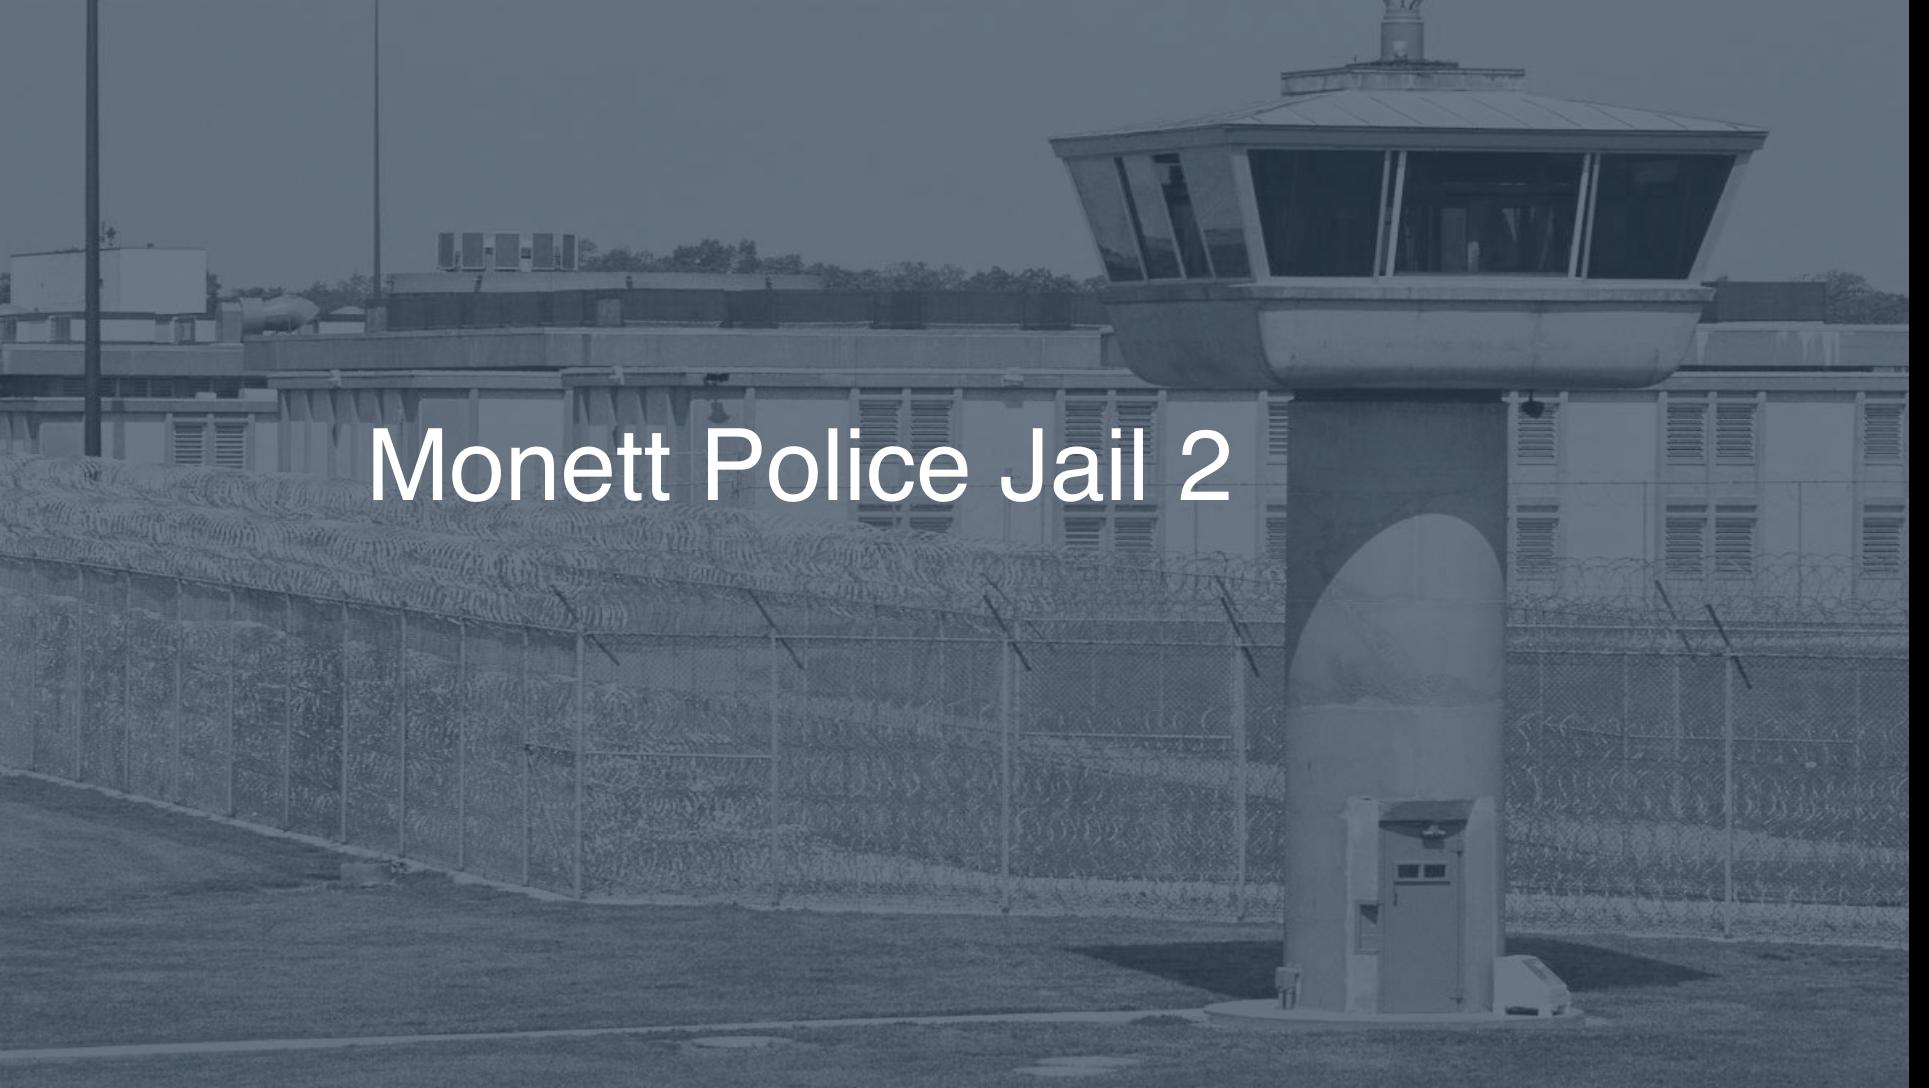 Monett Police Jail Inmate Search, Lookup & Services - Pigeonly